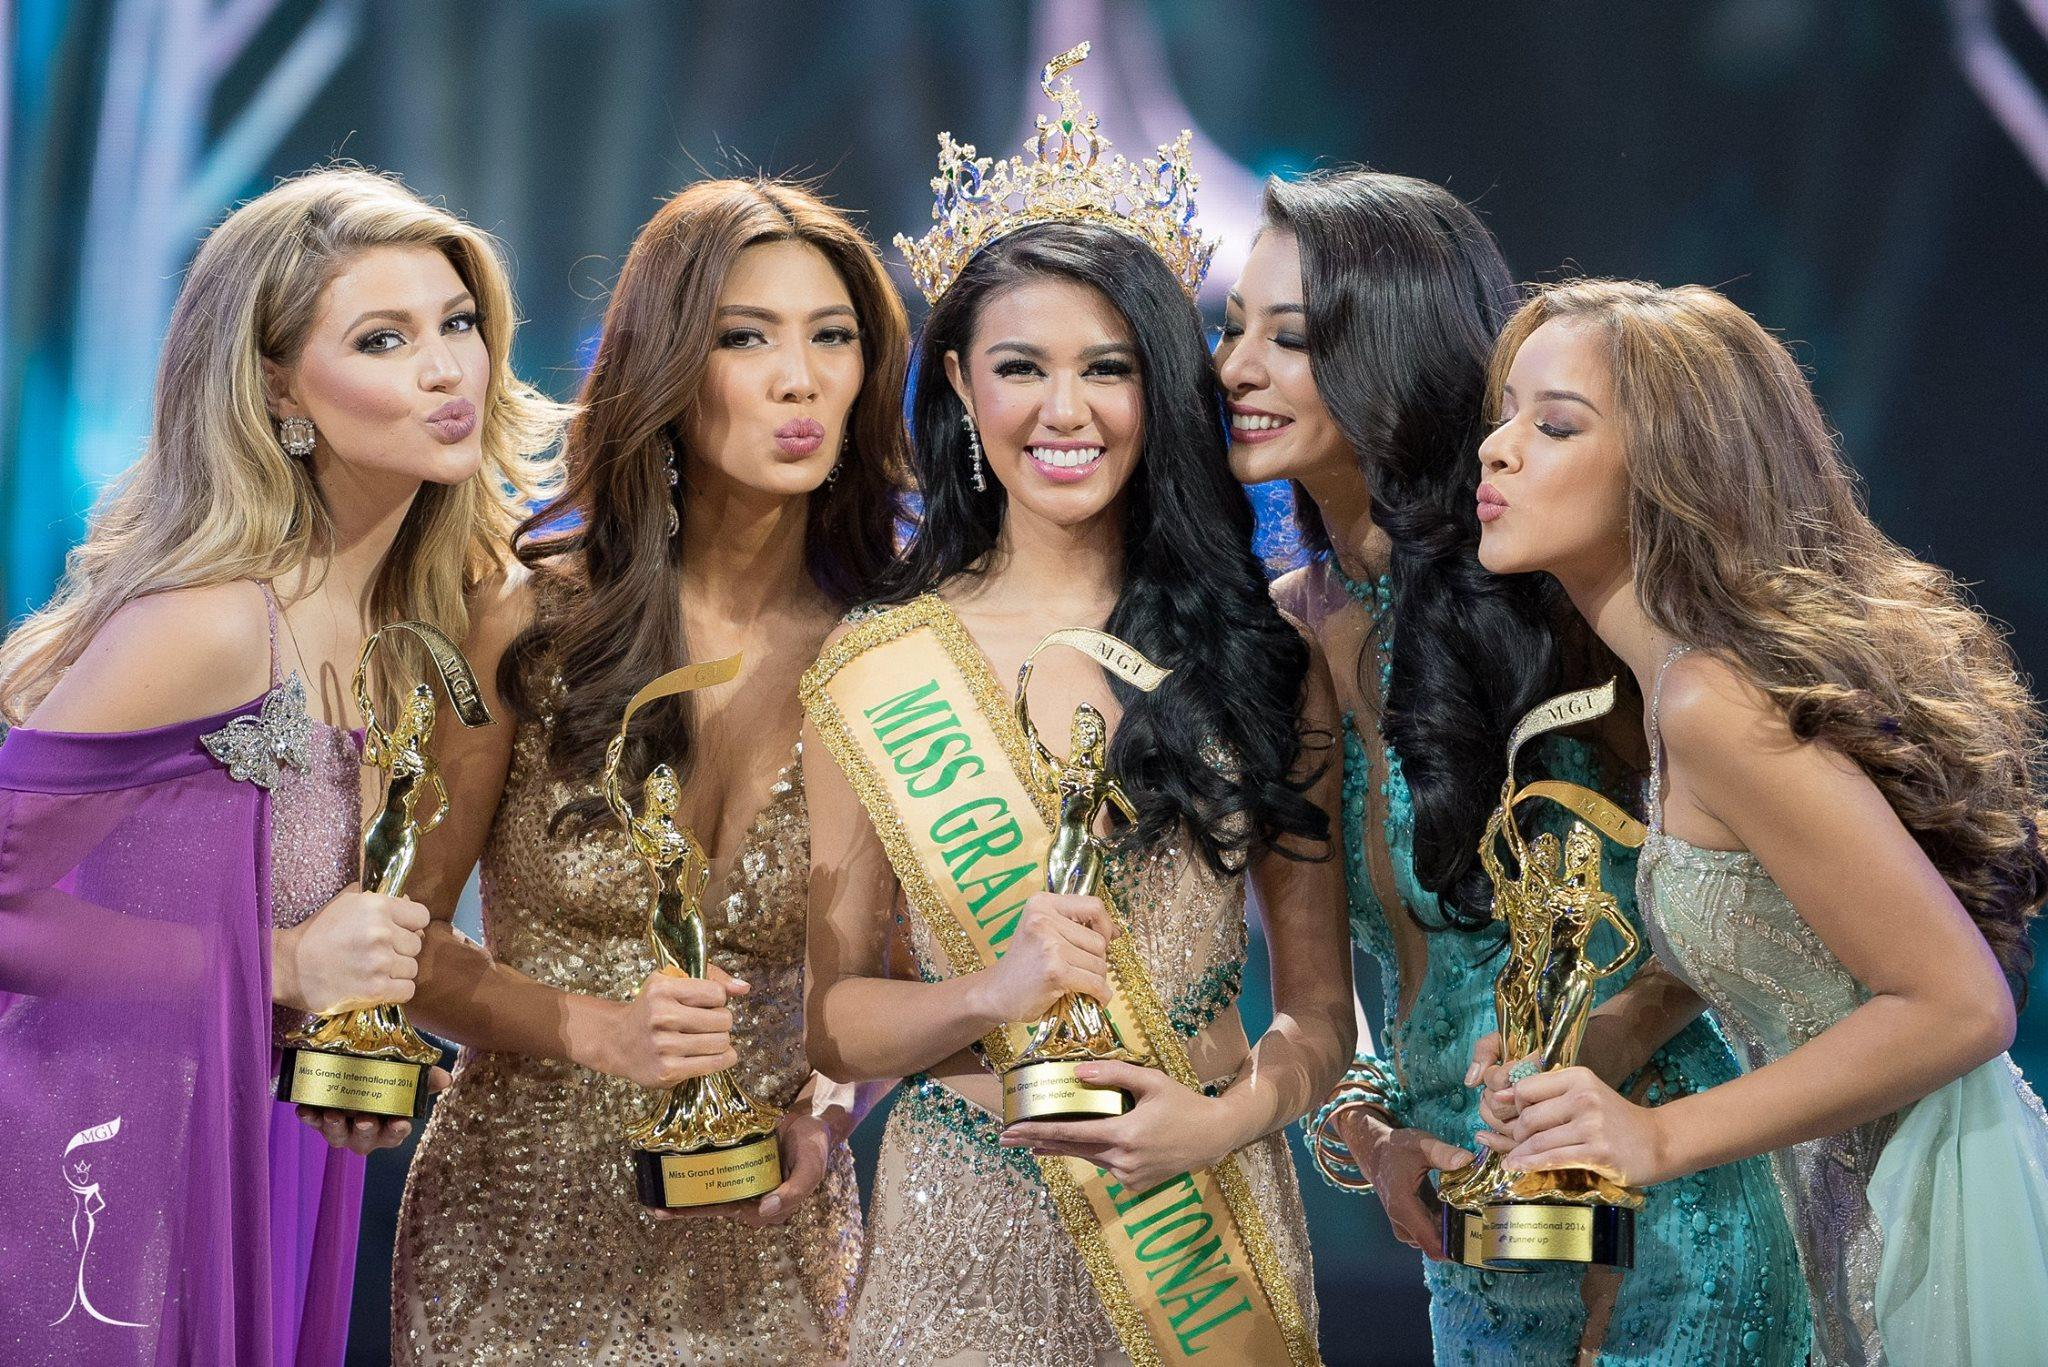 La indonesa Ariska Putri es la nueva Miss Grand International